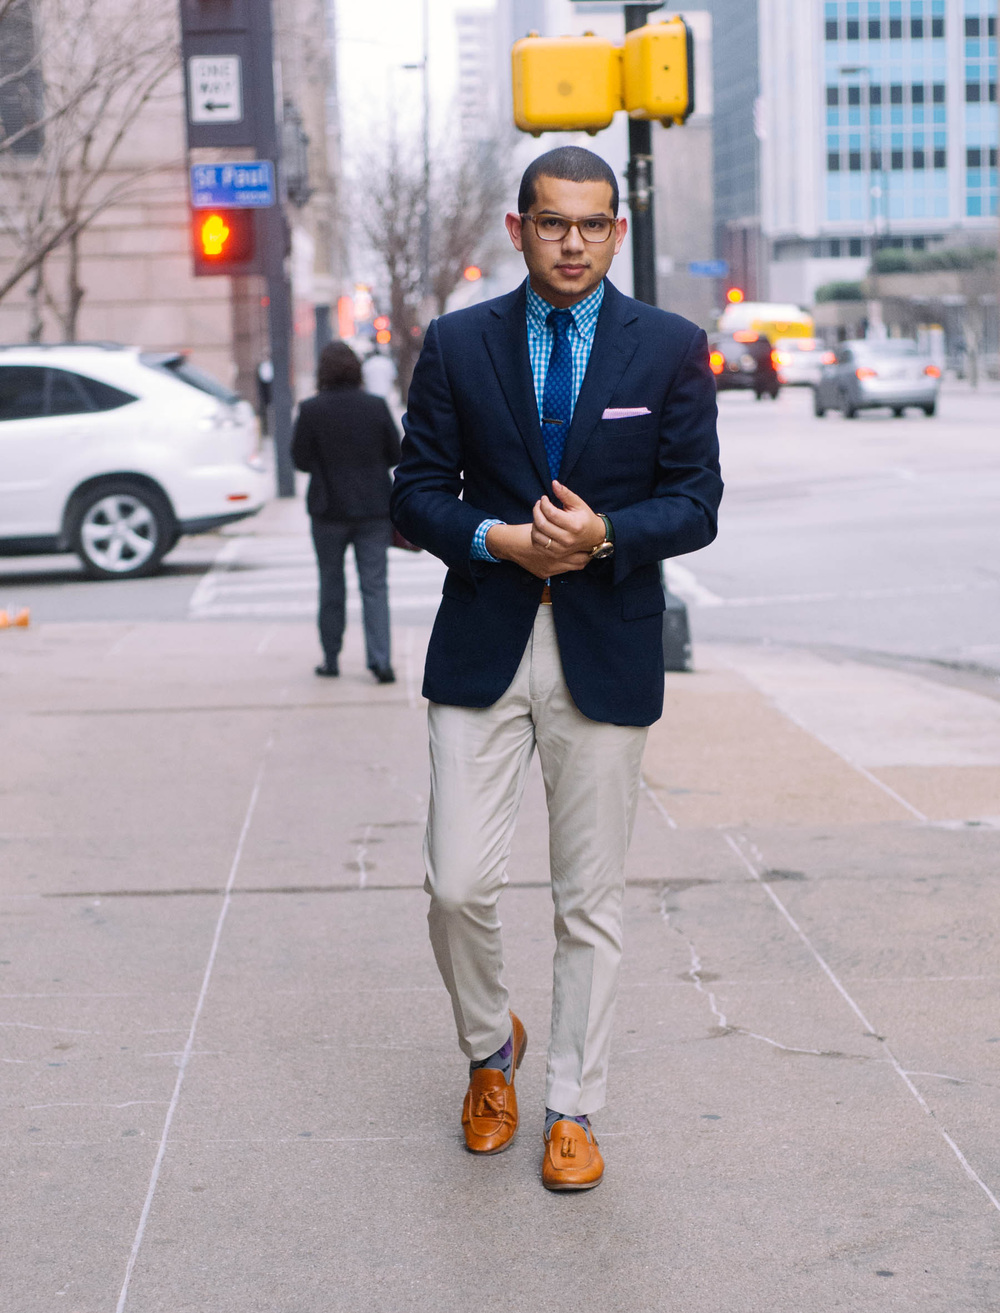 Jacket: Ermenegildo Zegna | Pants: J.Crew | Shirt: J.Crew (similar here) | Tie: J.Crew (similar here) | Tie Clip: The Tie Bar (also love this one) | Shoes: Mr. B's (similar here) | Glasses: Tom Ford | Watch: Shinola | Pocket Square: Brooks Brothers (exact same thing here)